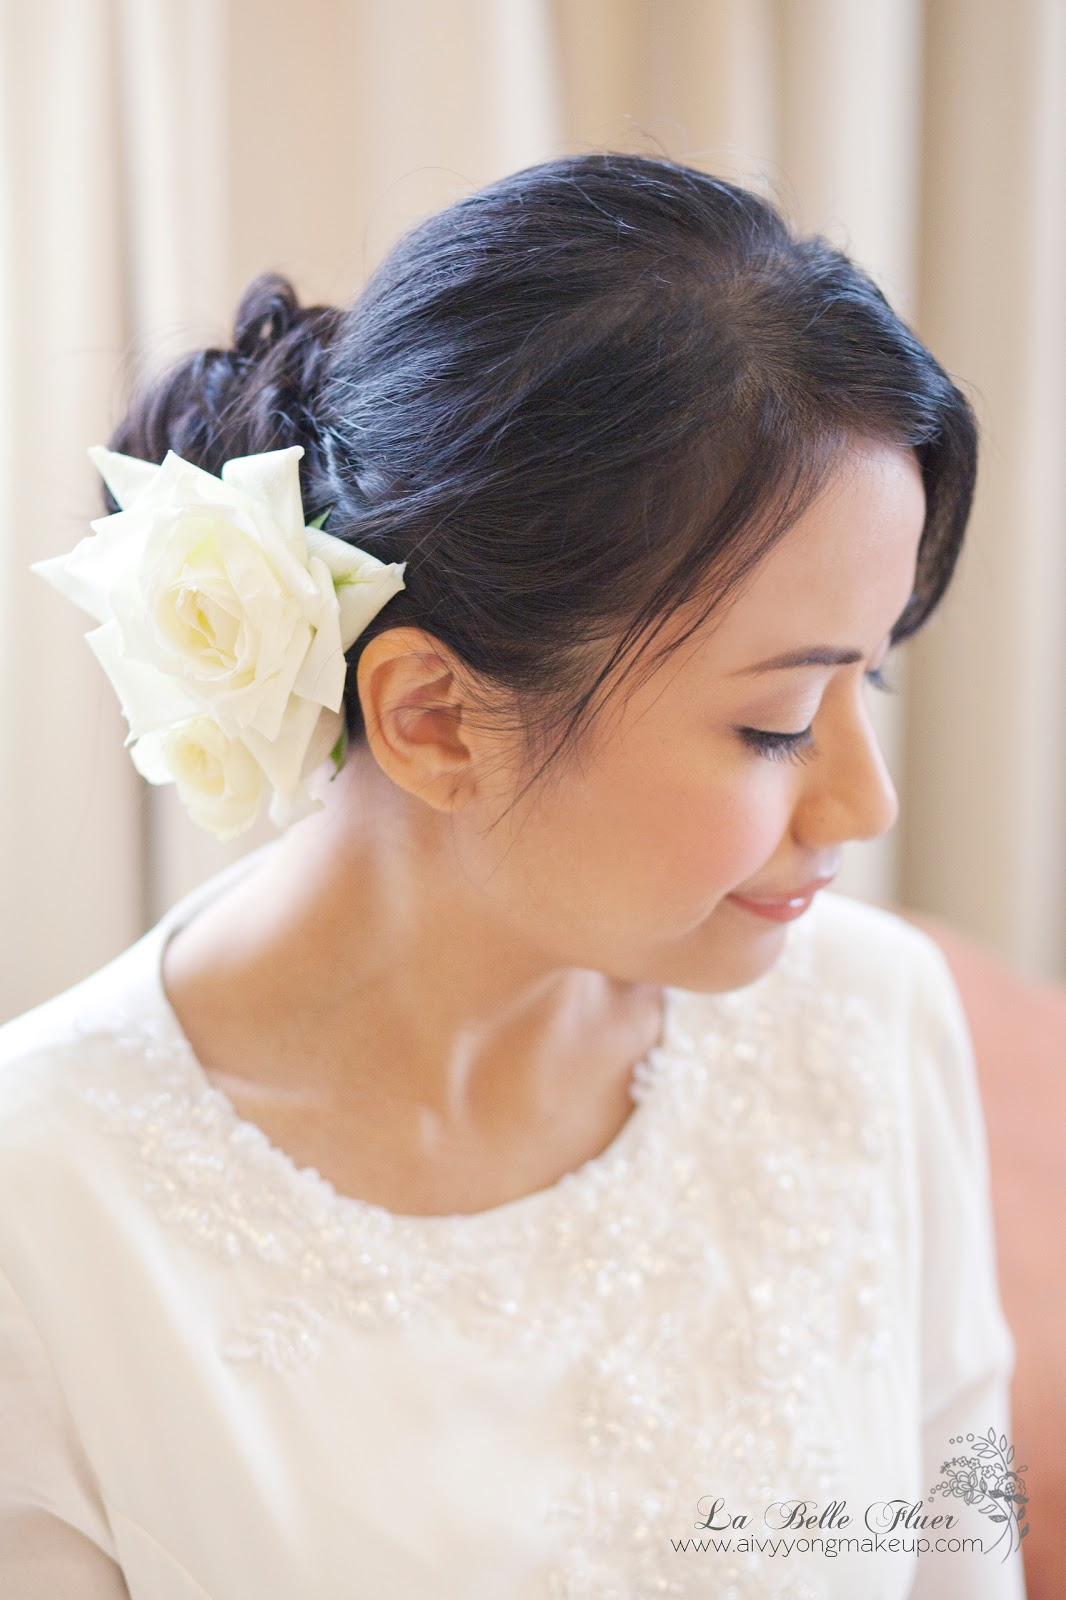 lovely bride-malay wedding ceremony   aivy yong air brush